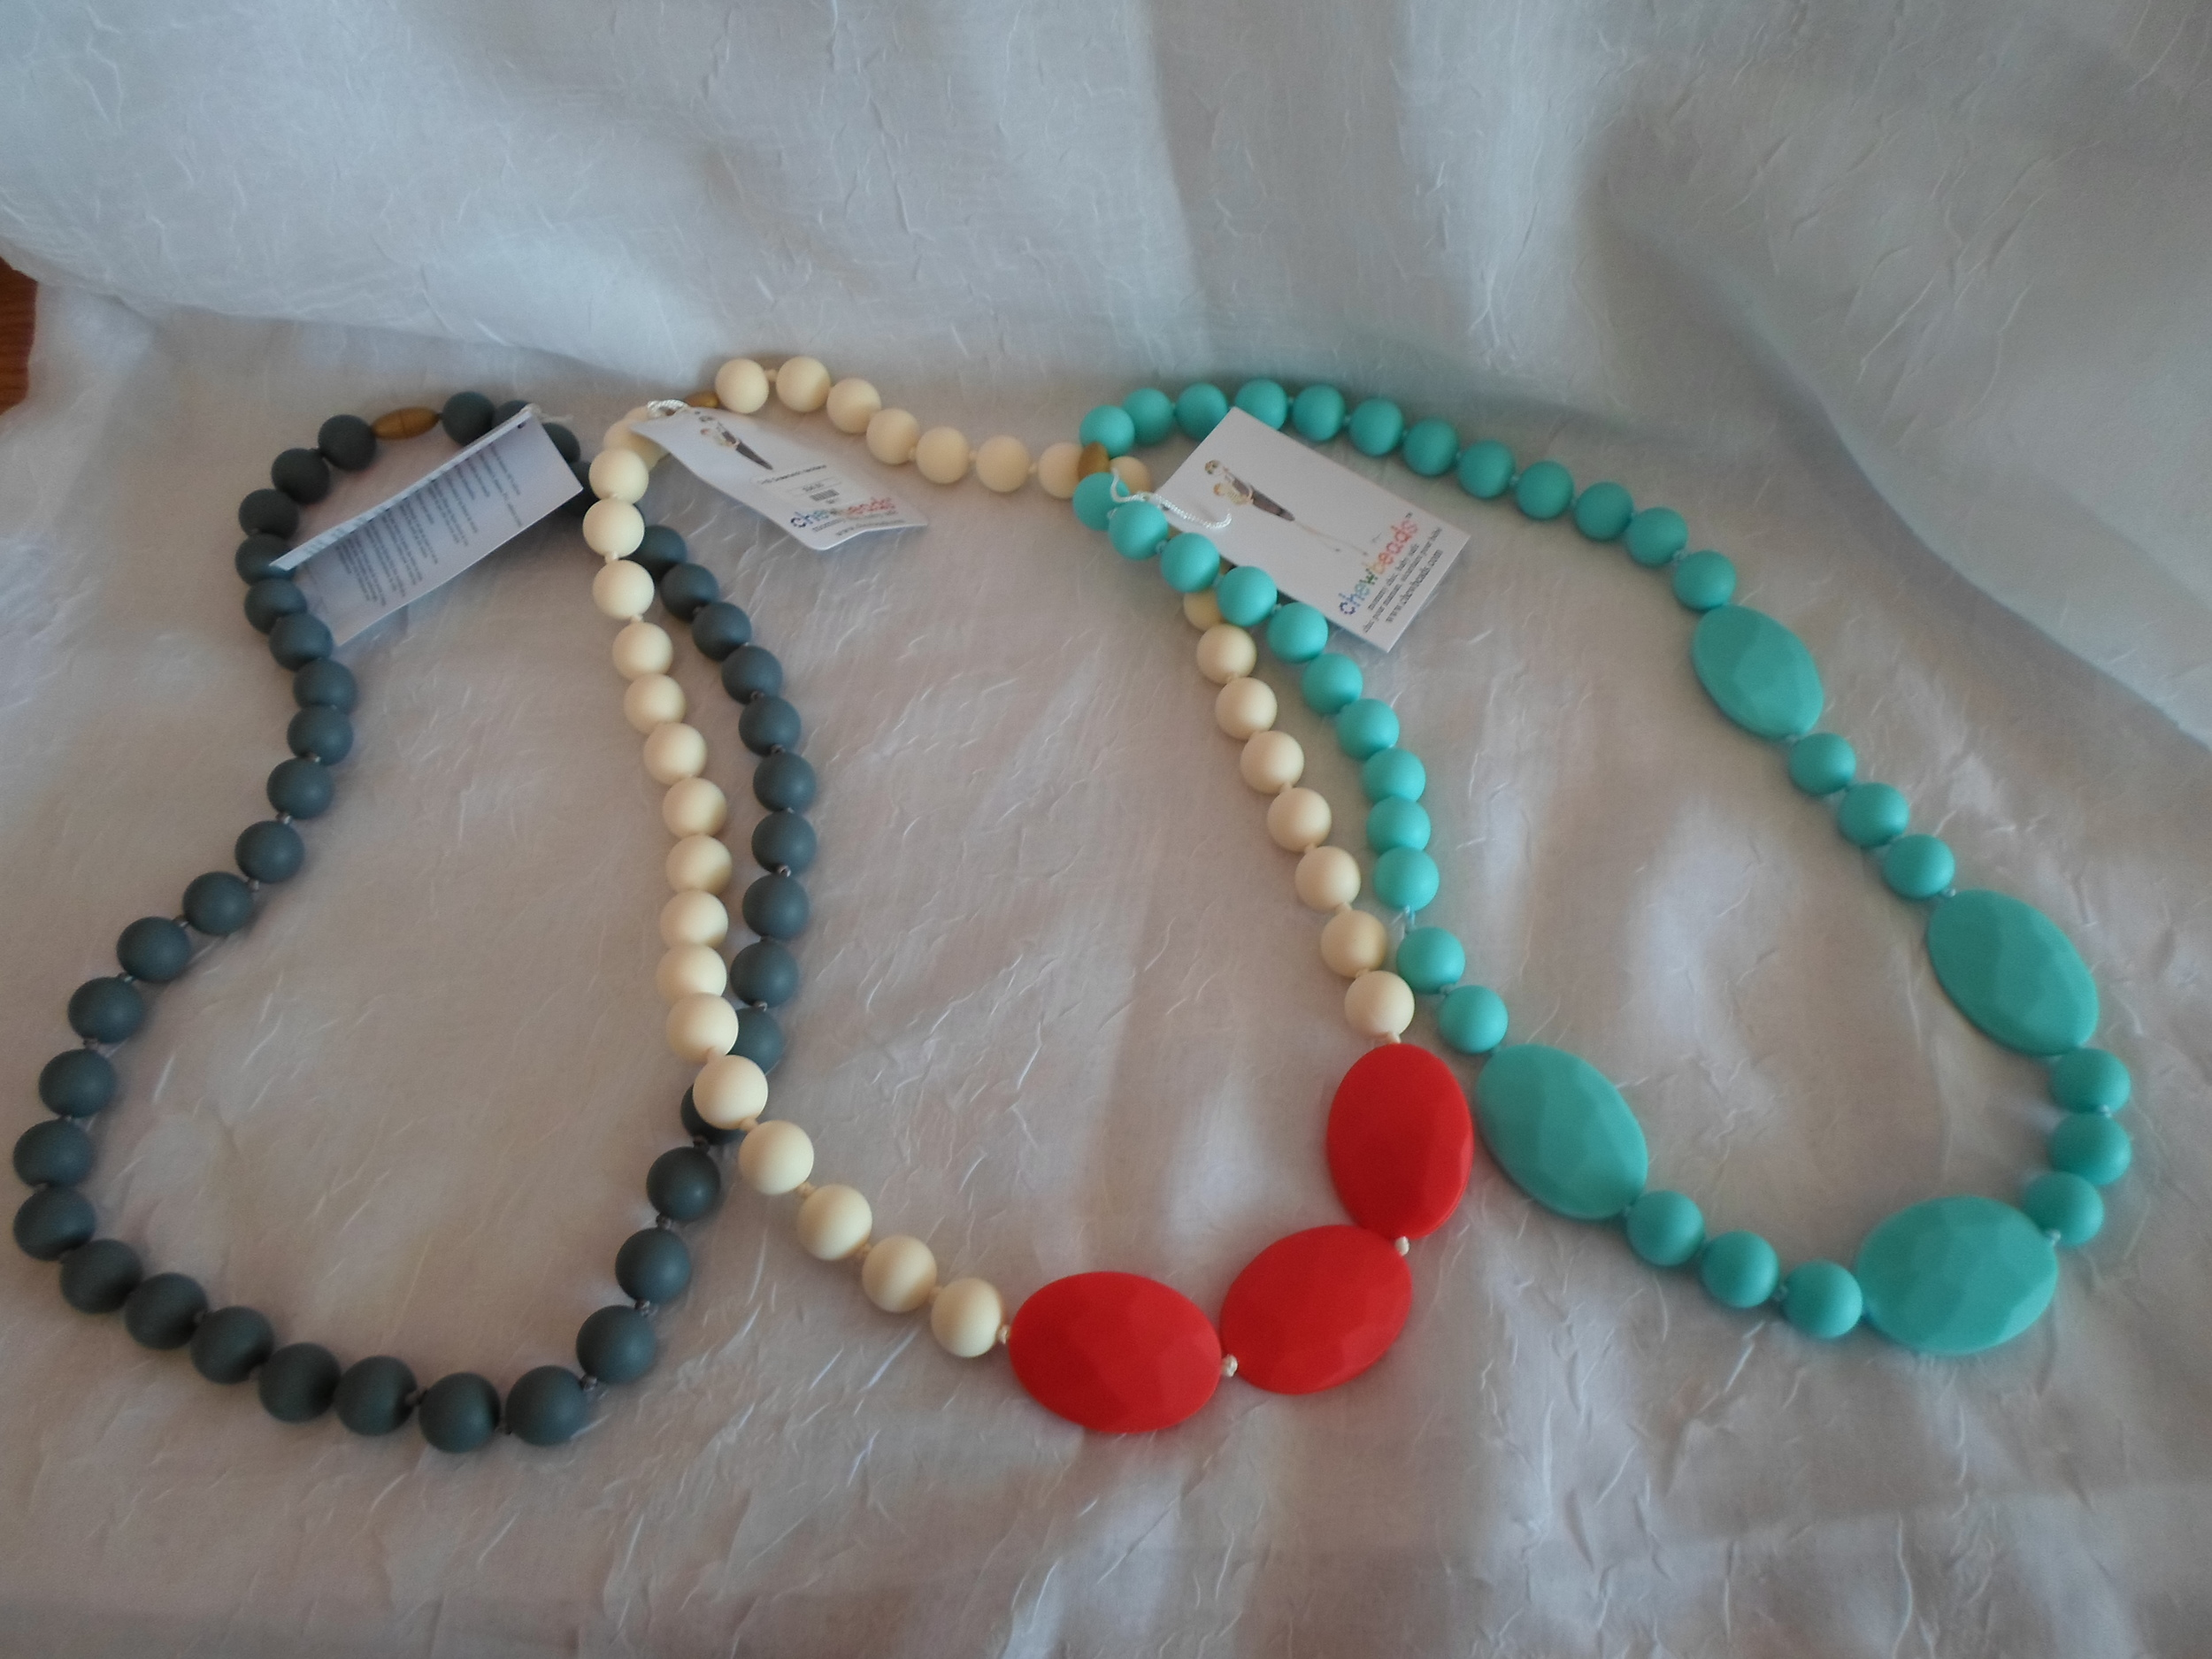 Chewbeads Necklace for Mom $29.50-$36.50      Wants 1